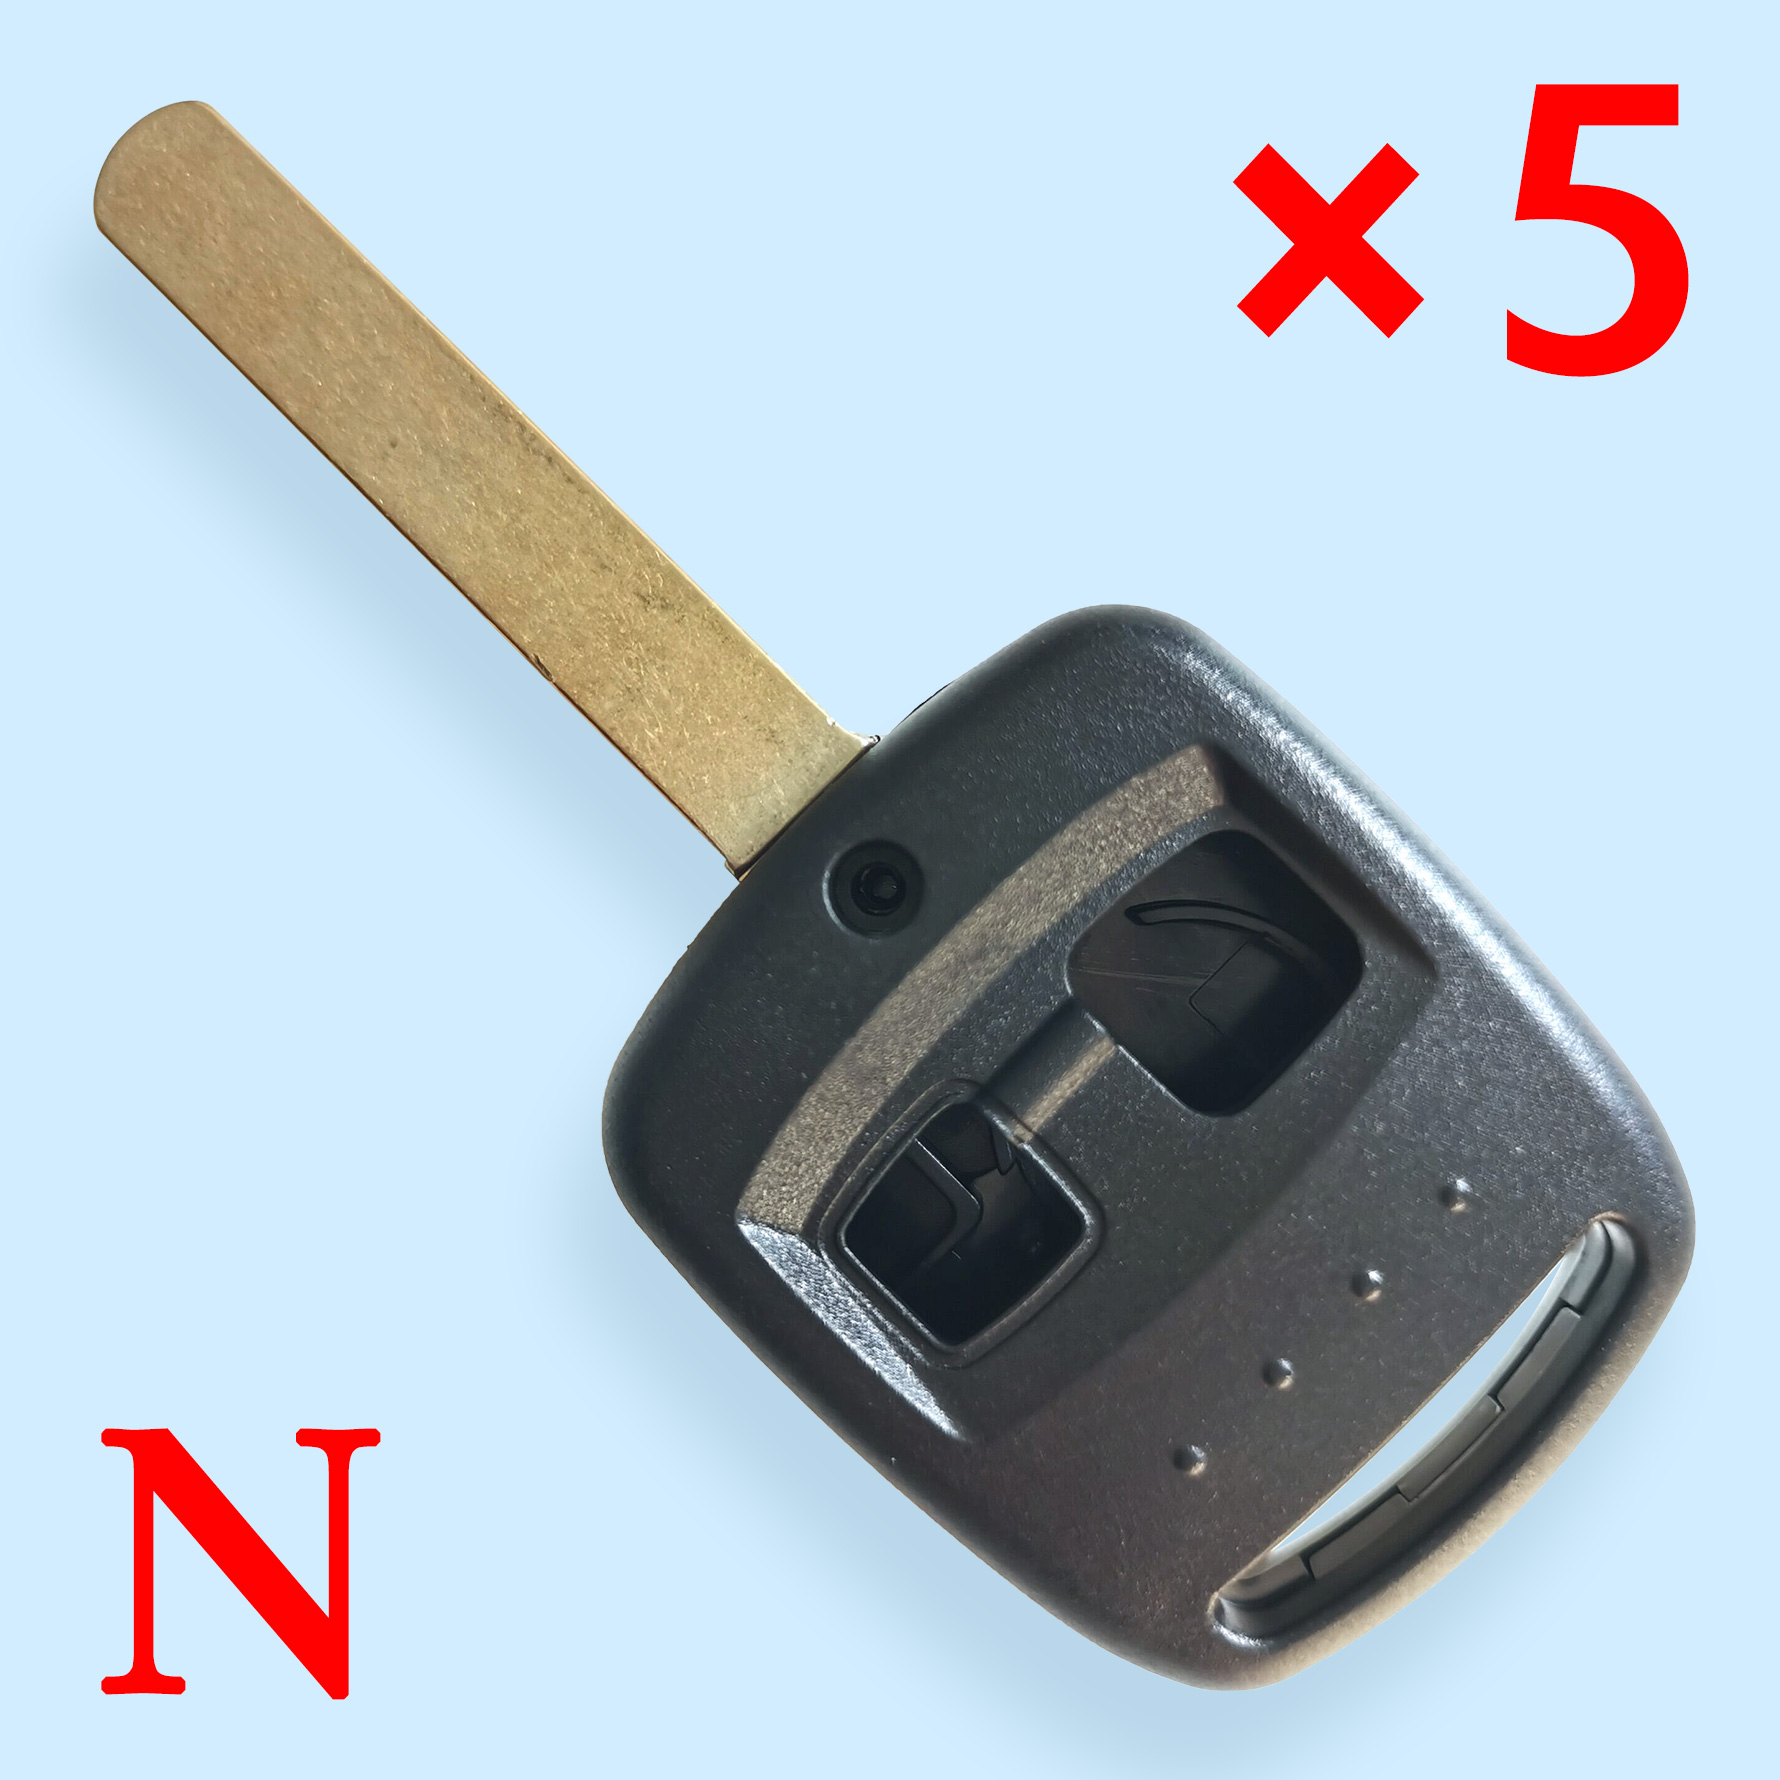 2 Buttons Laser Remote Key Shell for Subaru - Pack of 5